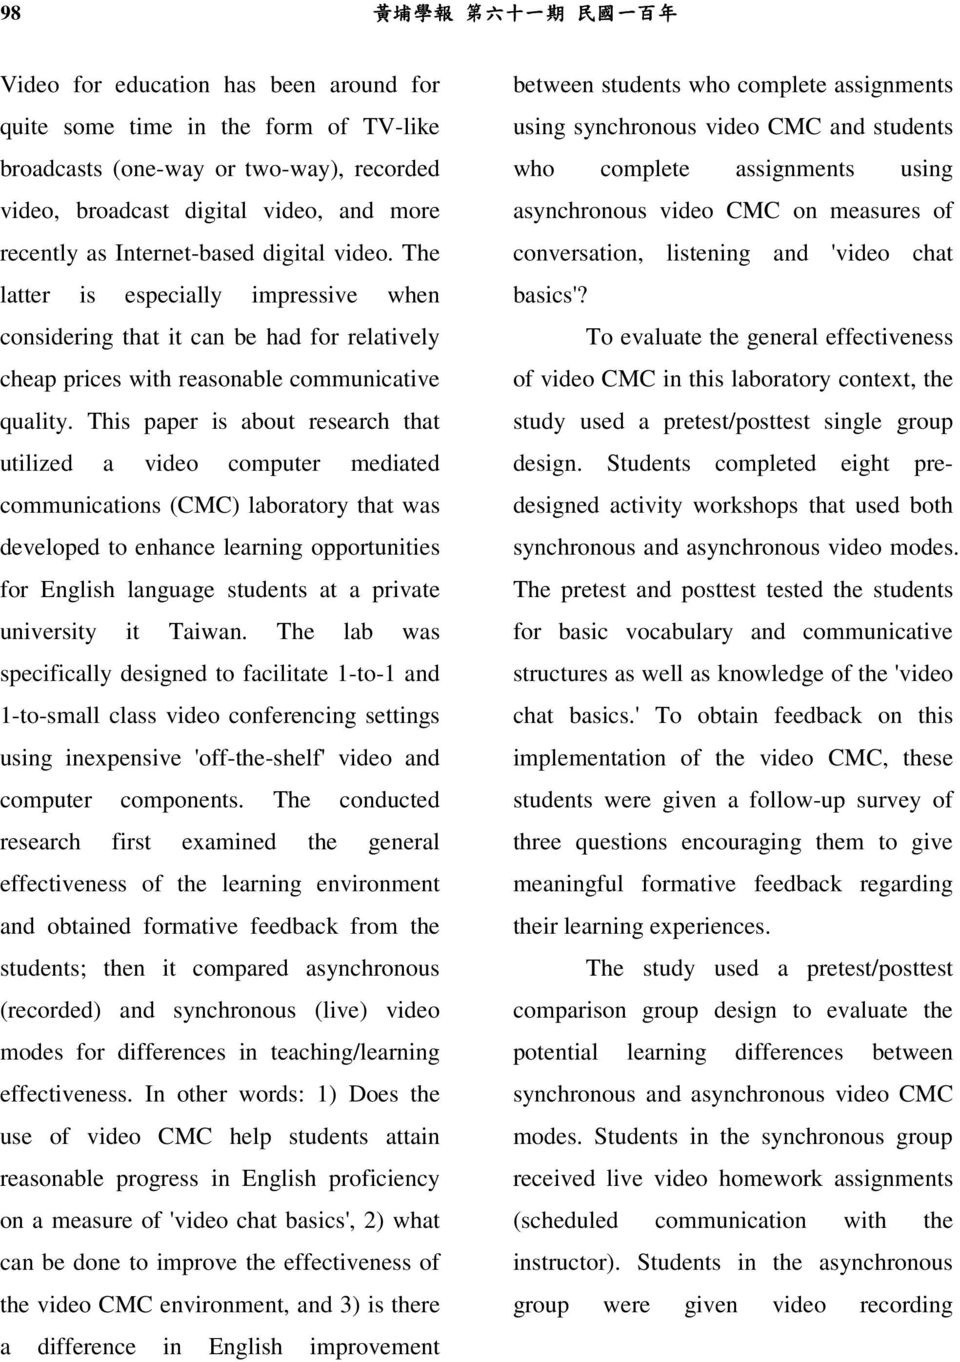 This paper is about research that utilized a video computer mediated communications (CMC) laboratory that was developed to enhance learning opportunities for English language students at a private